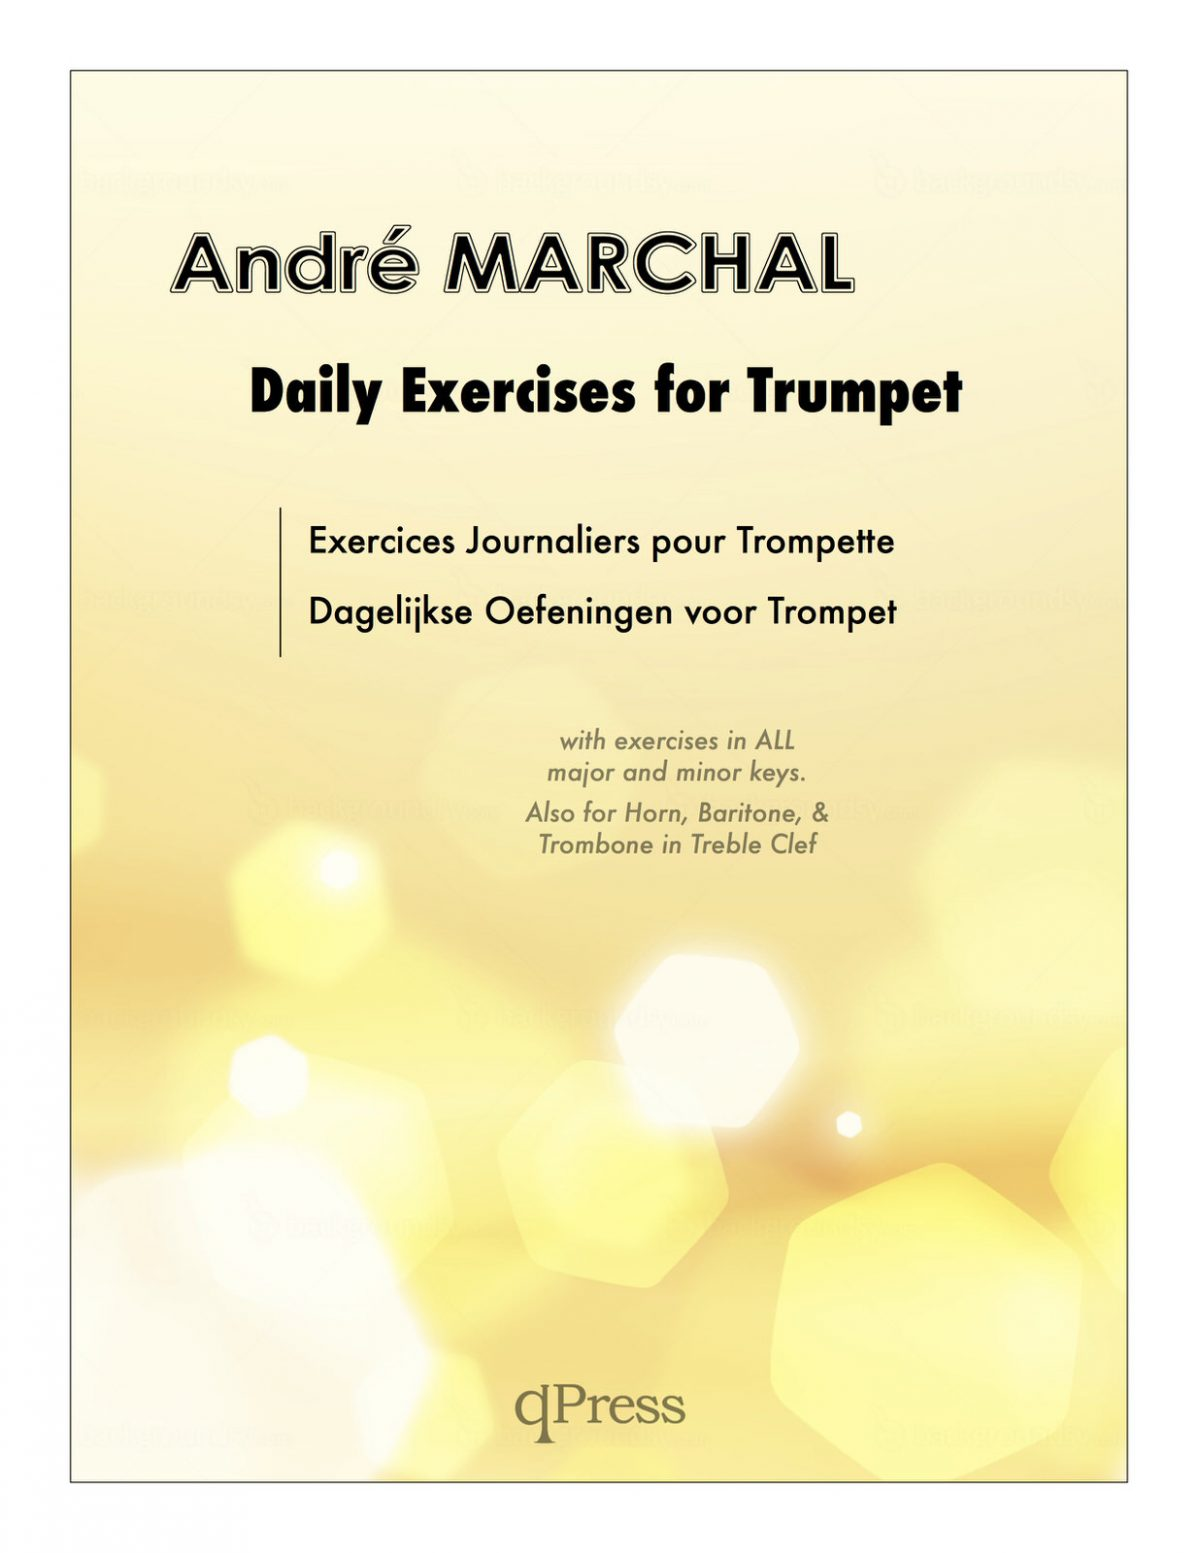 marchal-andre-exercises-journaliers